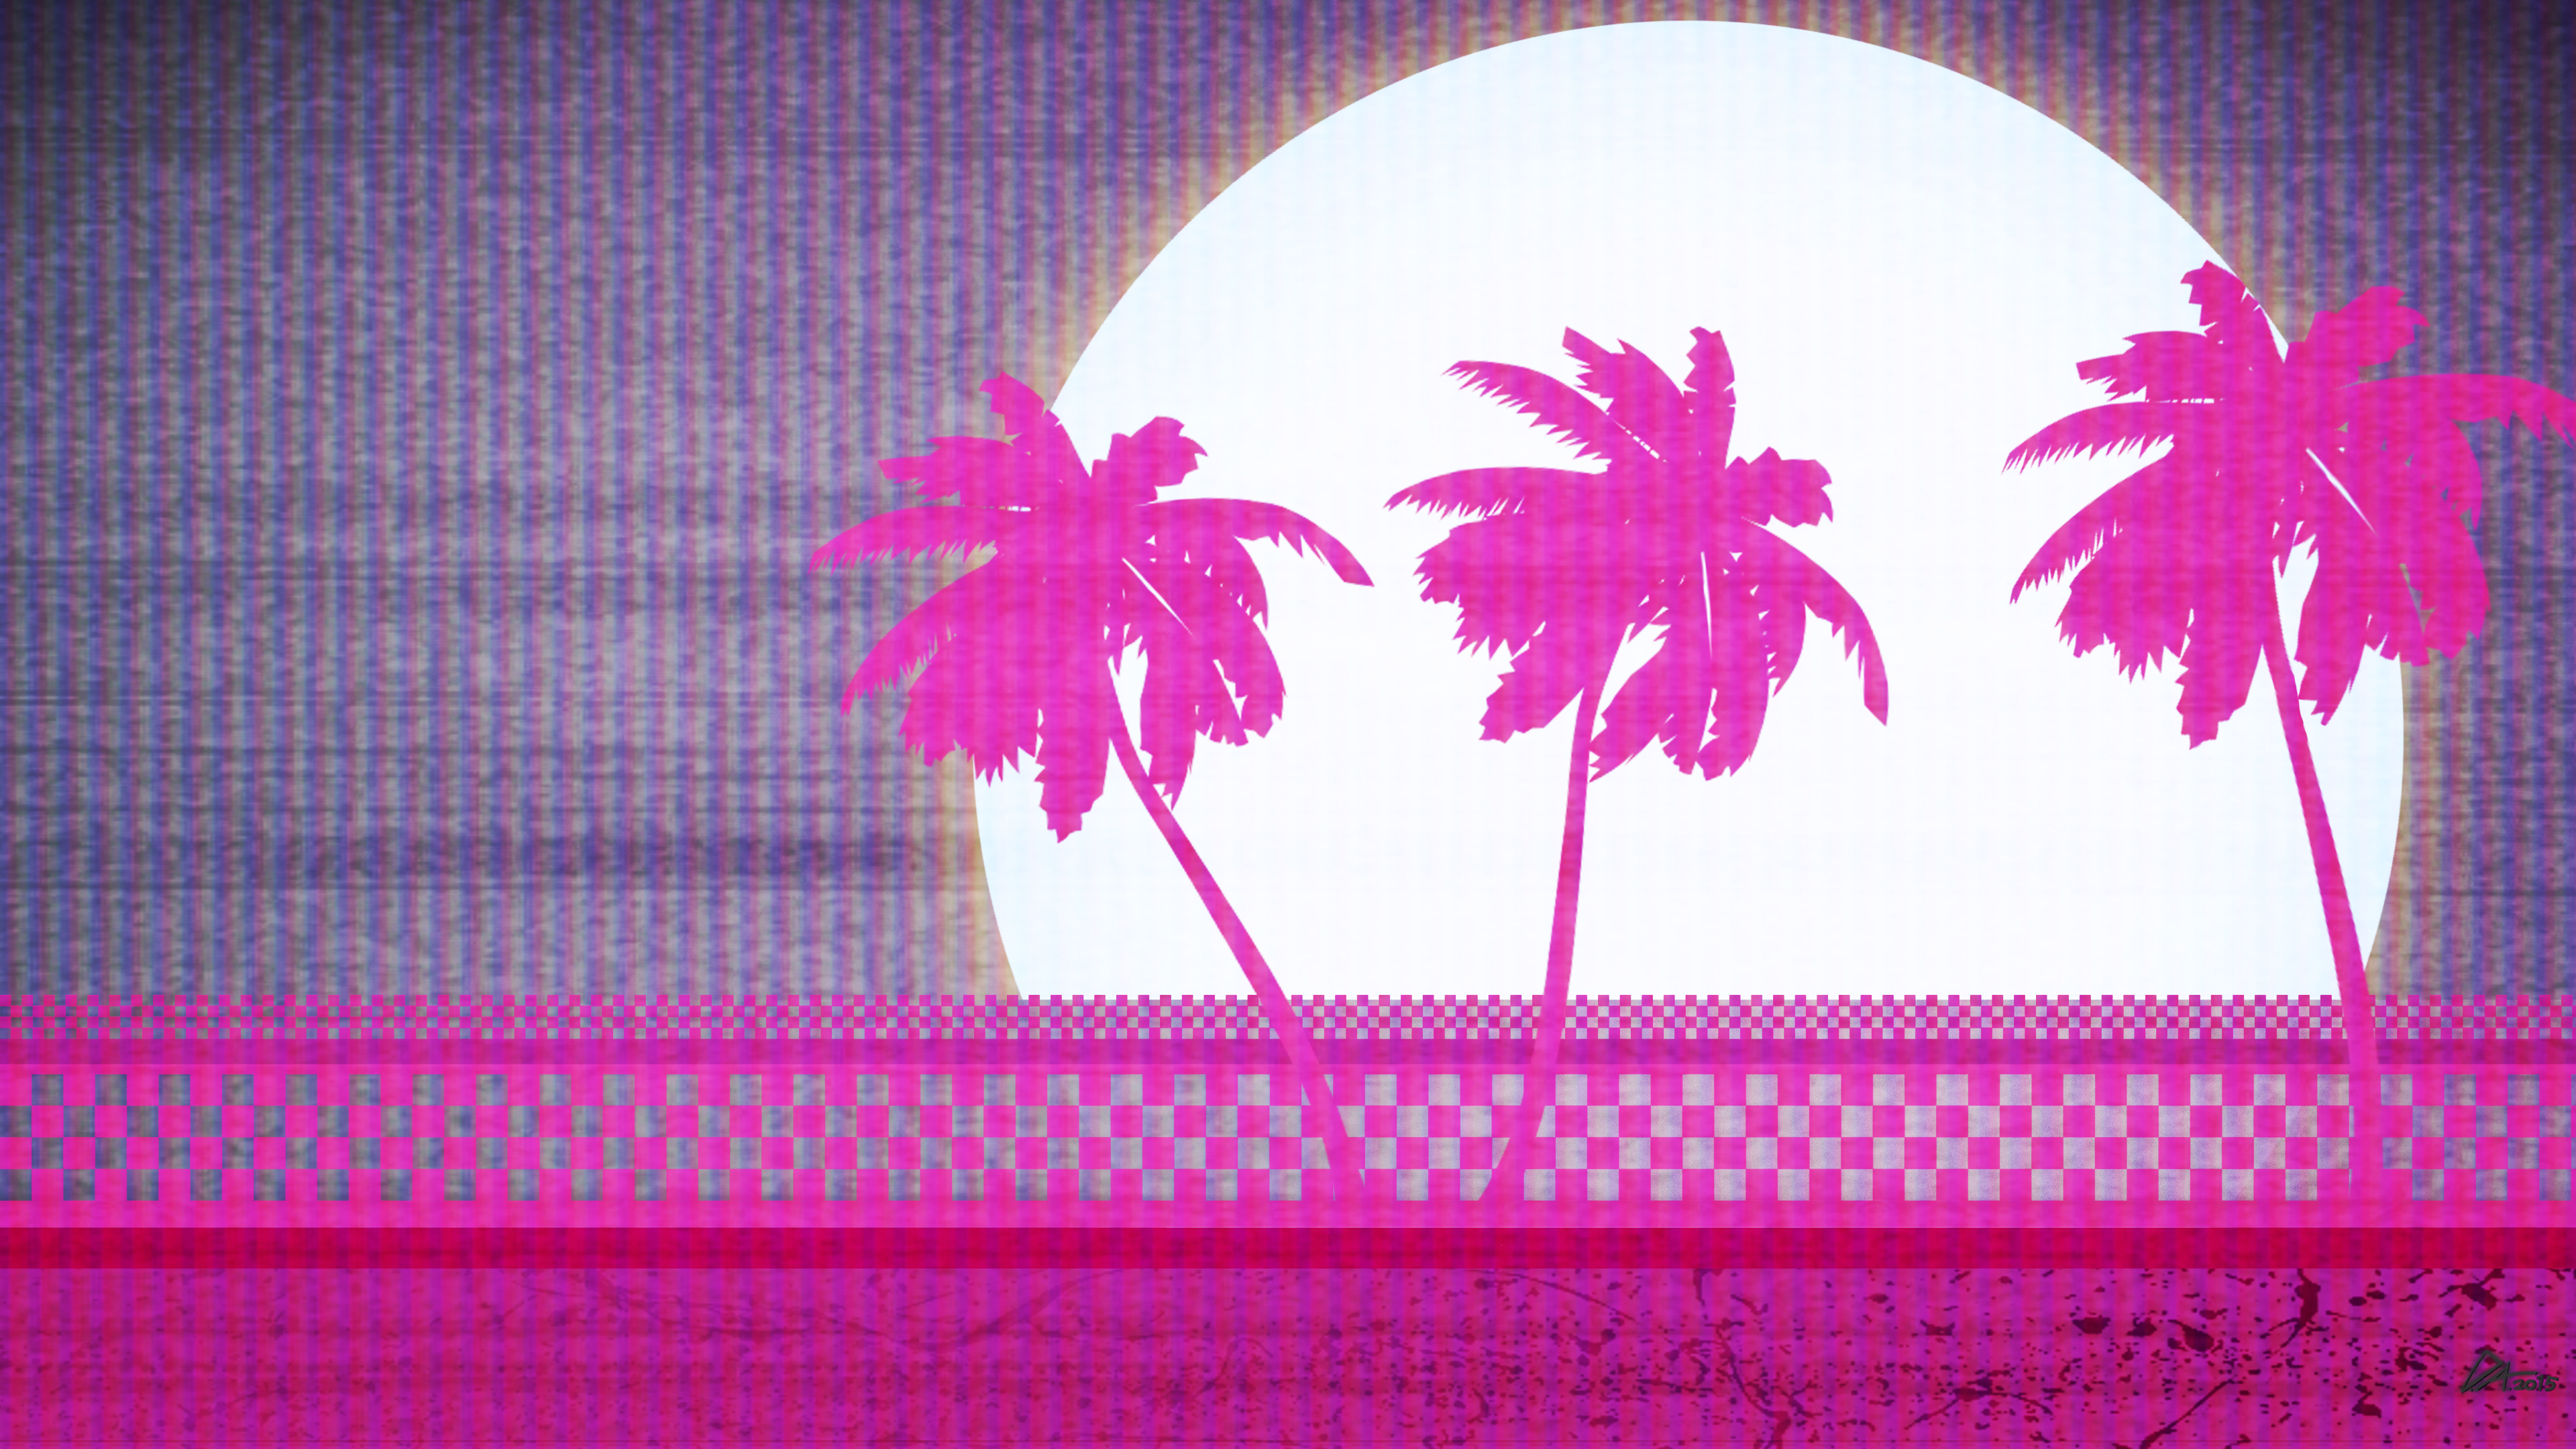 54 Hotline Miami Hd Wallpapers Background Images